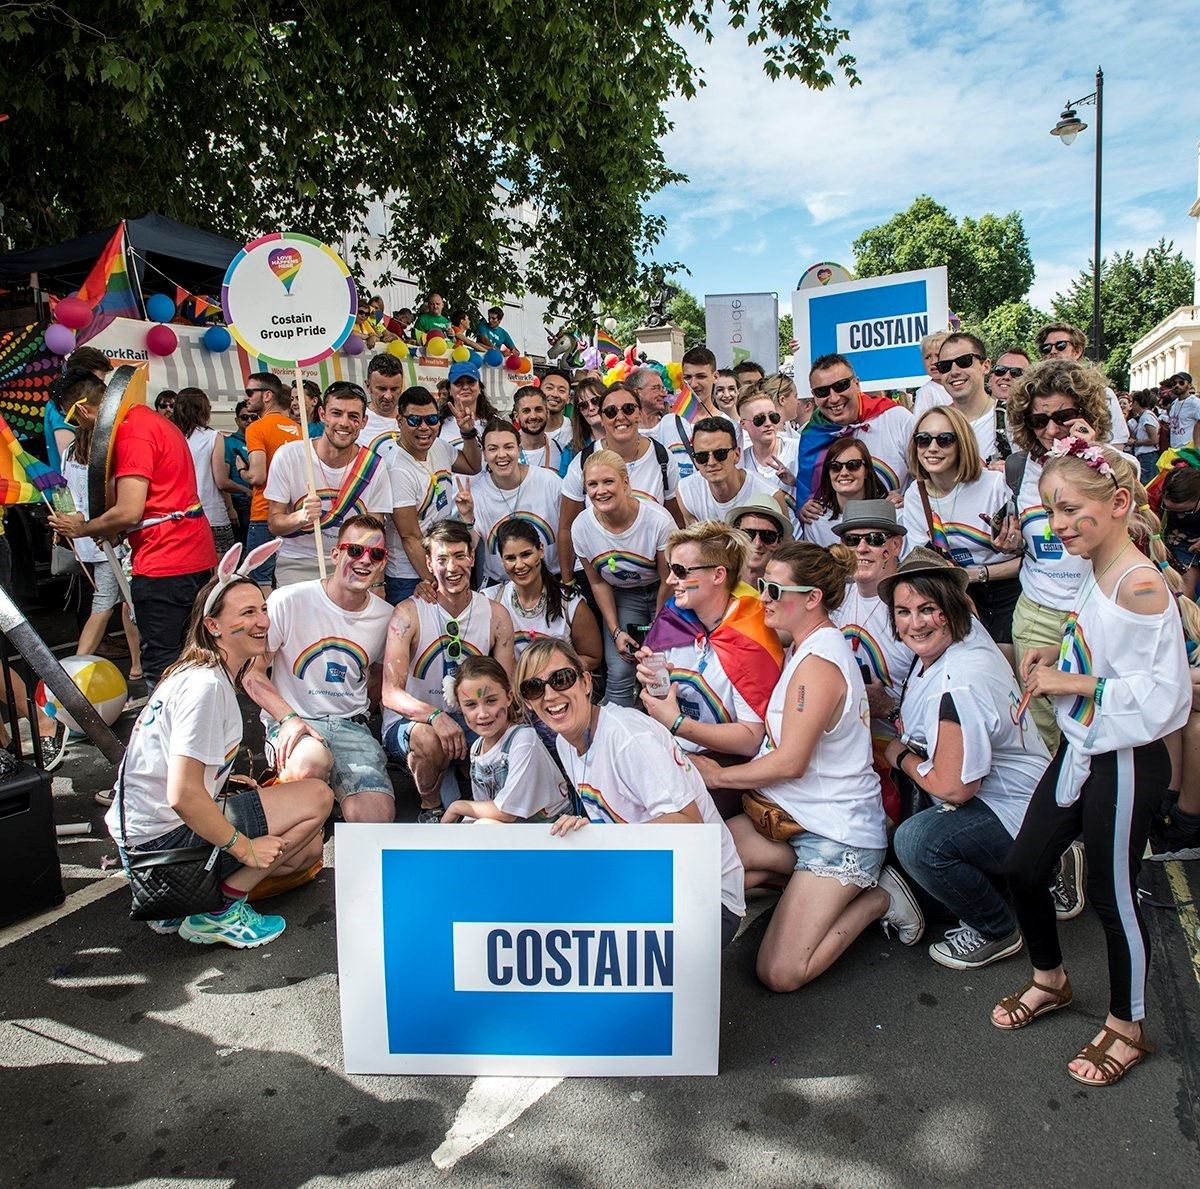 Costain at London Pride 2017